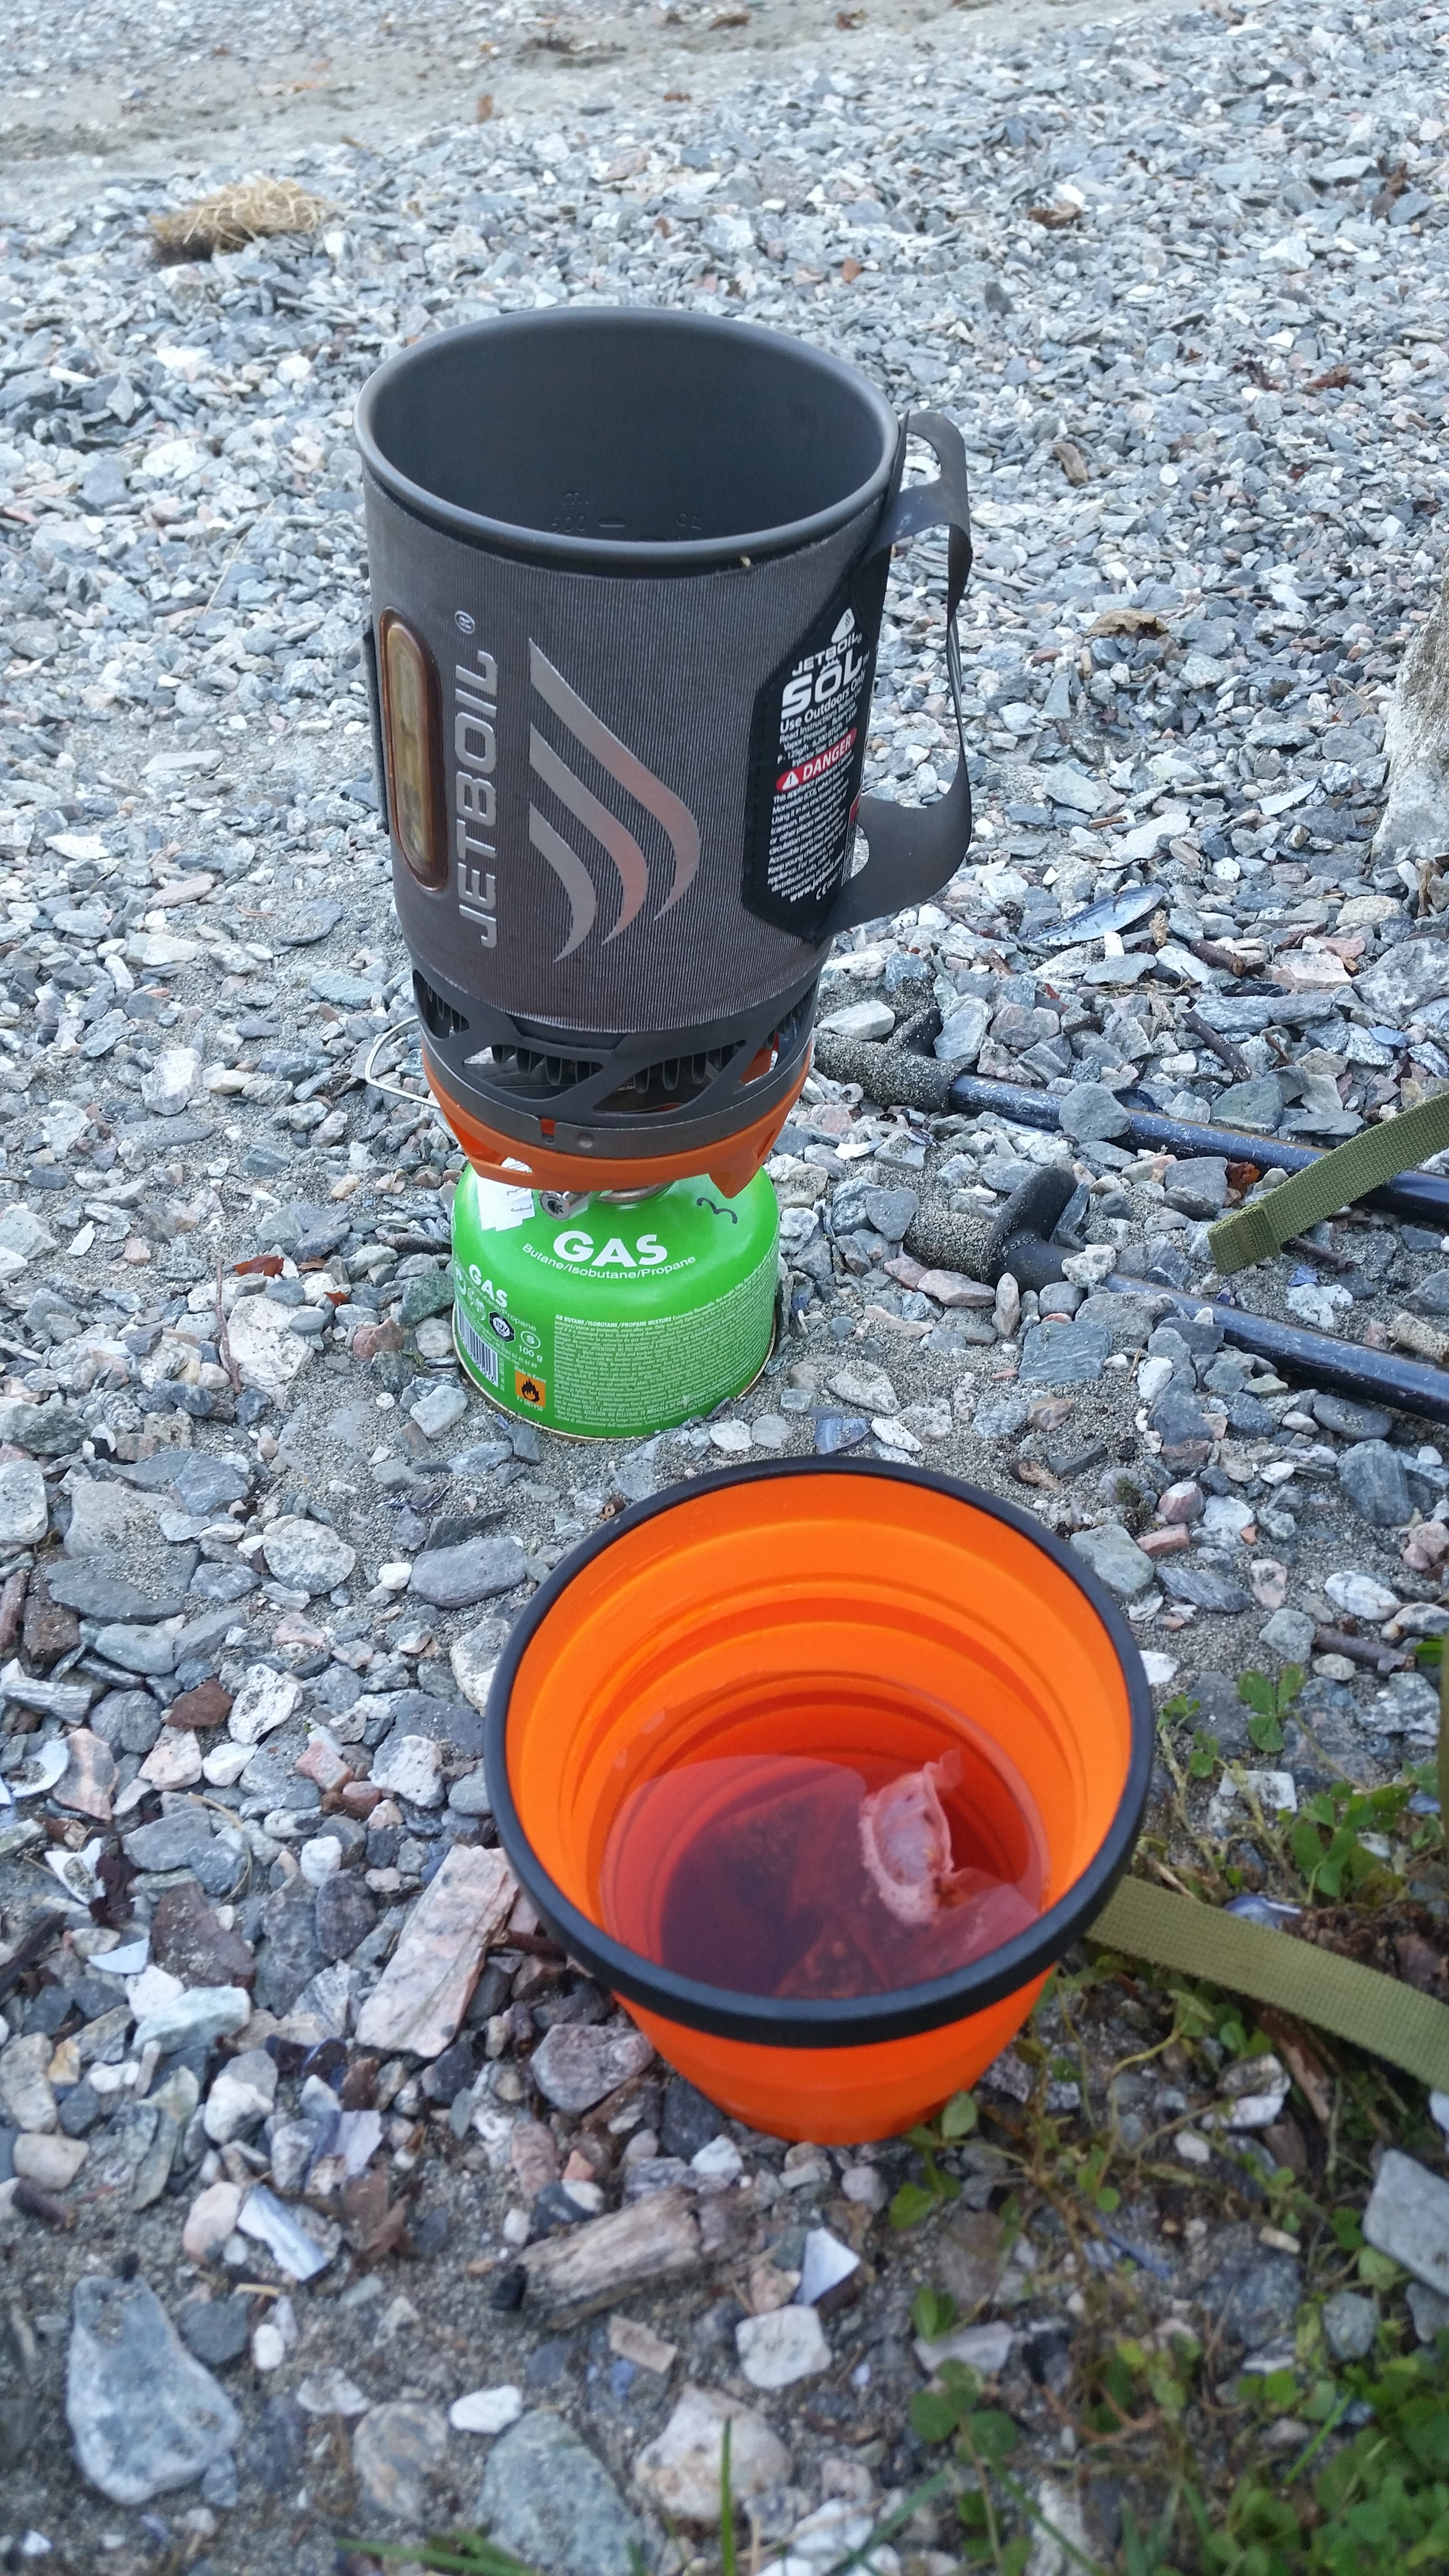 Jetboil and a fruity brew